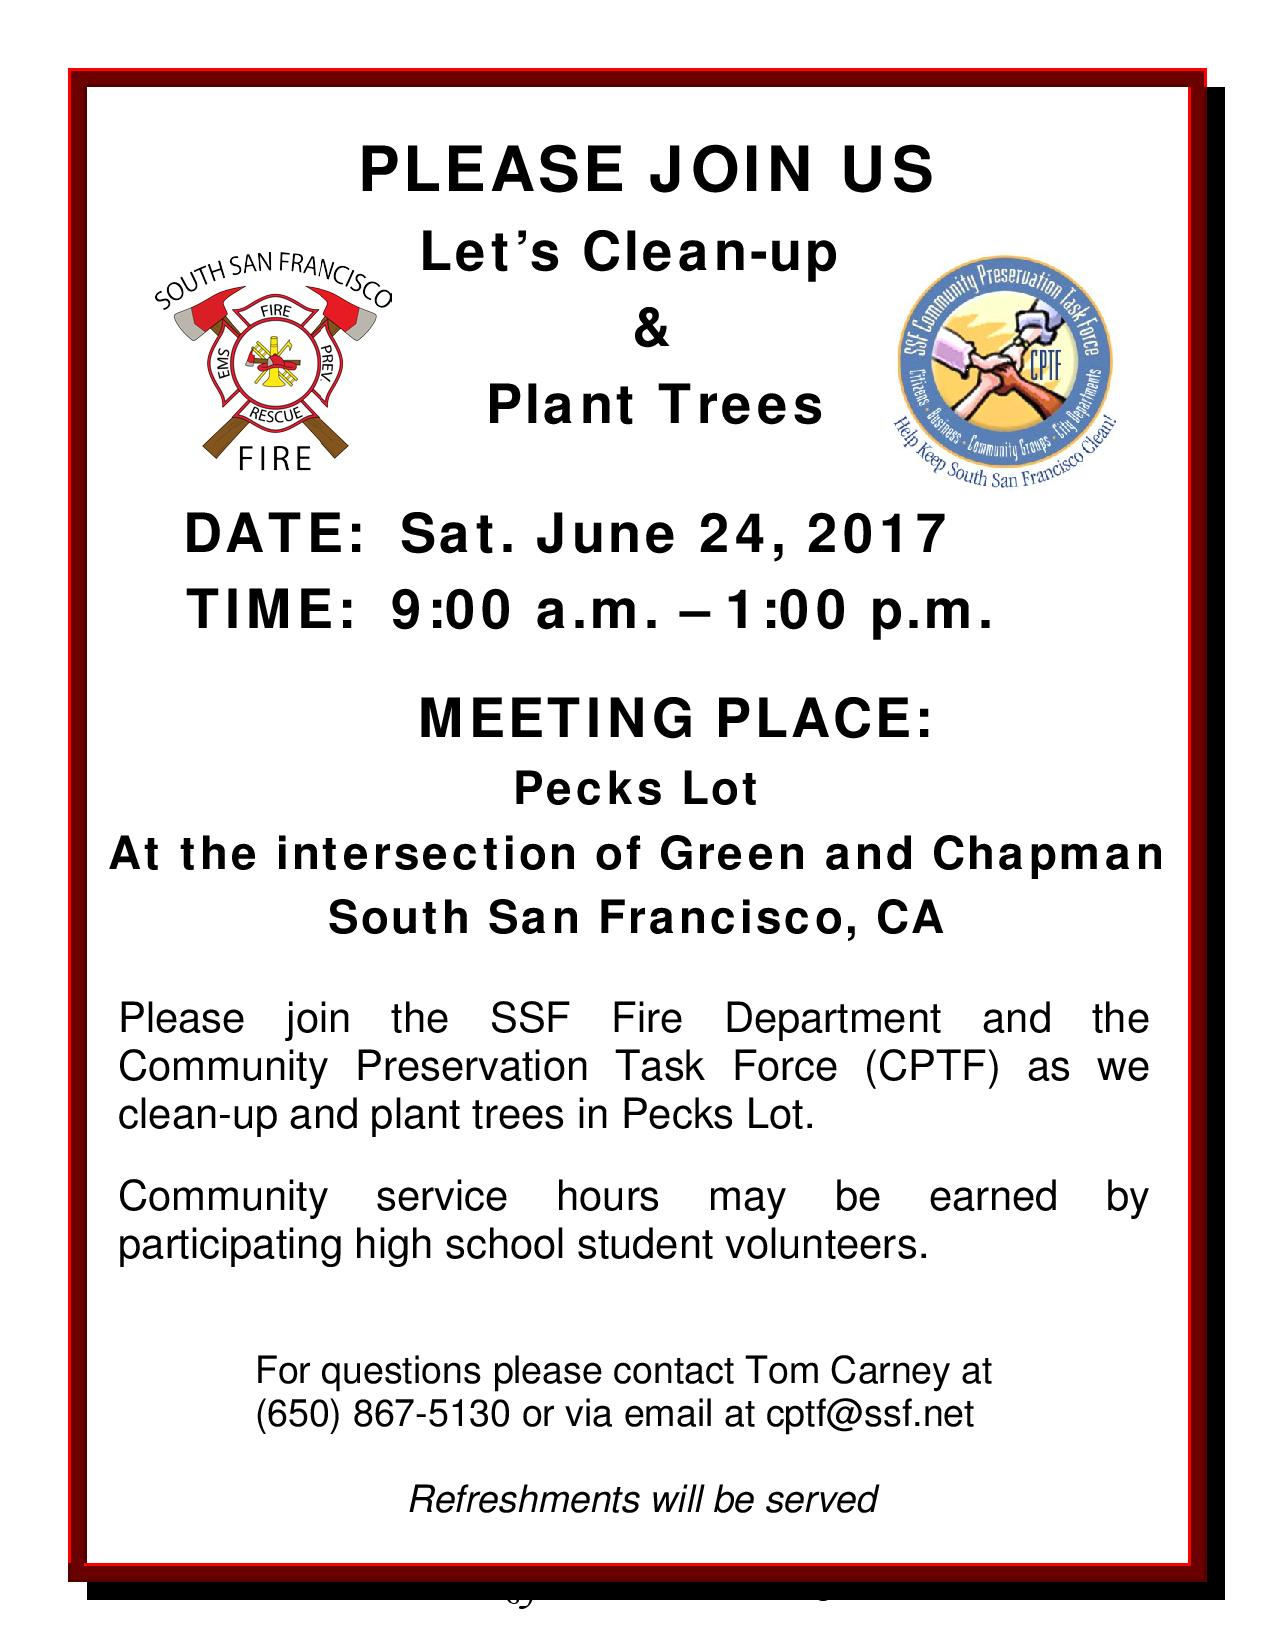 CPTF Clean Up & Tree Planting in Pecks Lot Slated for June 24th